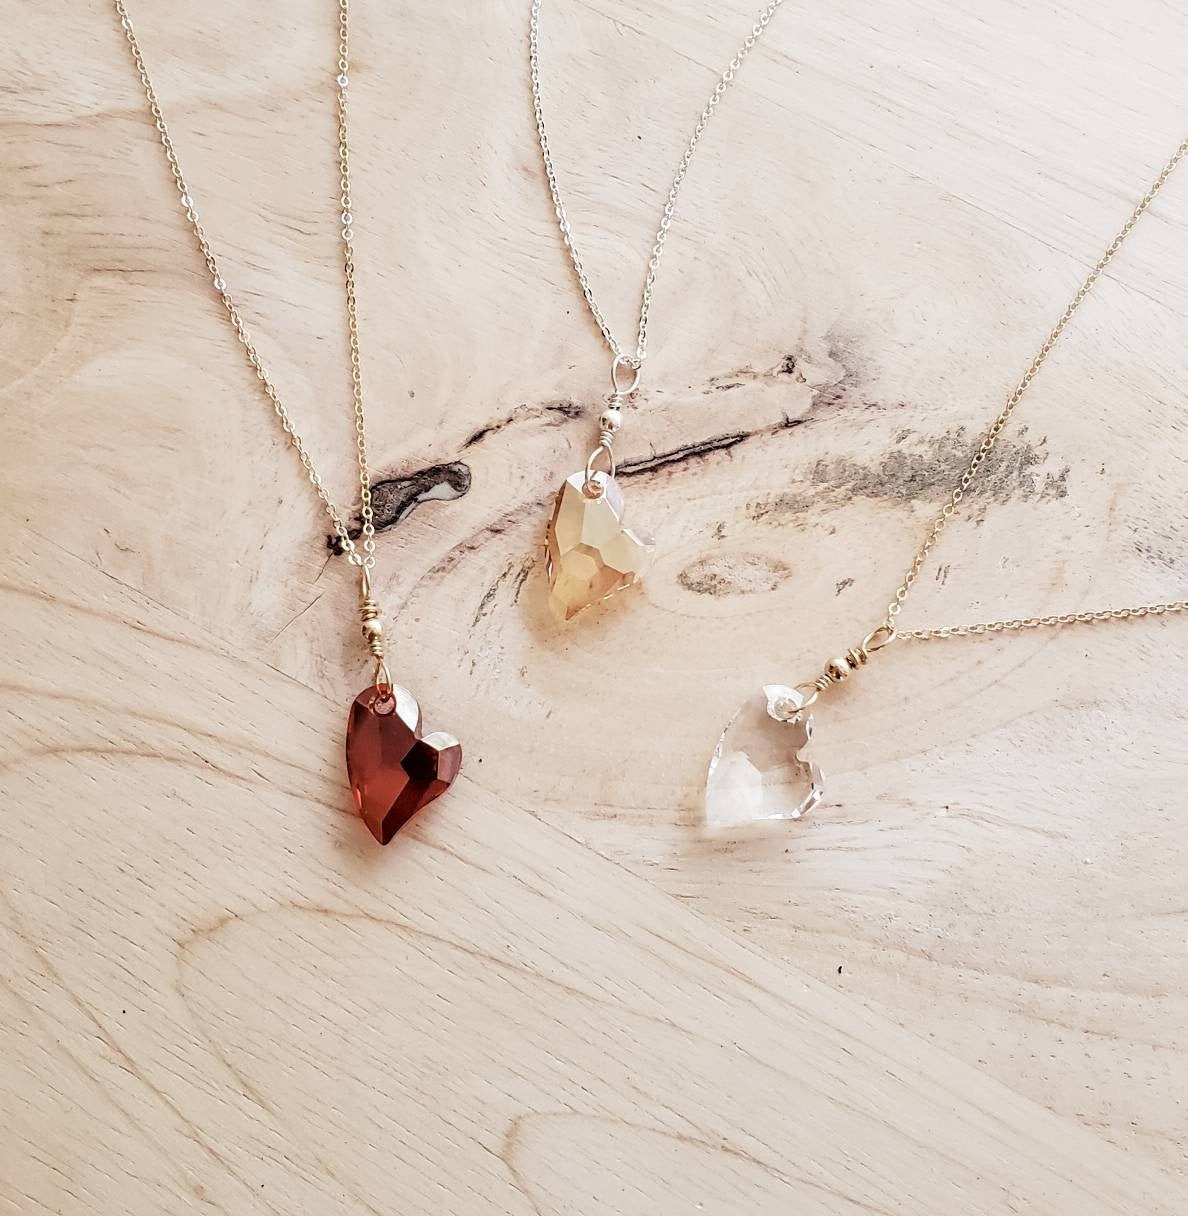 Mothers Day Gift Set of 2 Dainty Crystal and Gold Heart Necklaces Gift For Girlfriend Valentines Day Gift for Her Necklace Gift Set